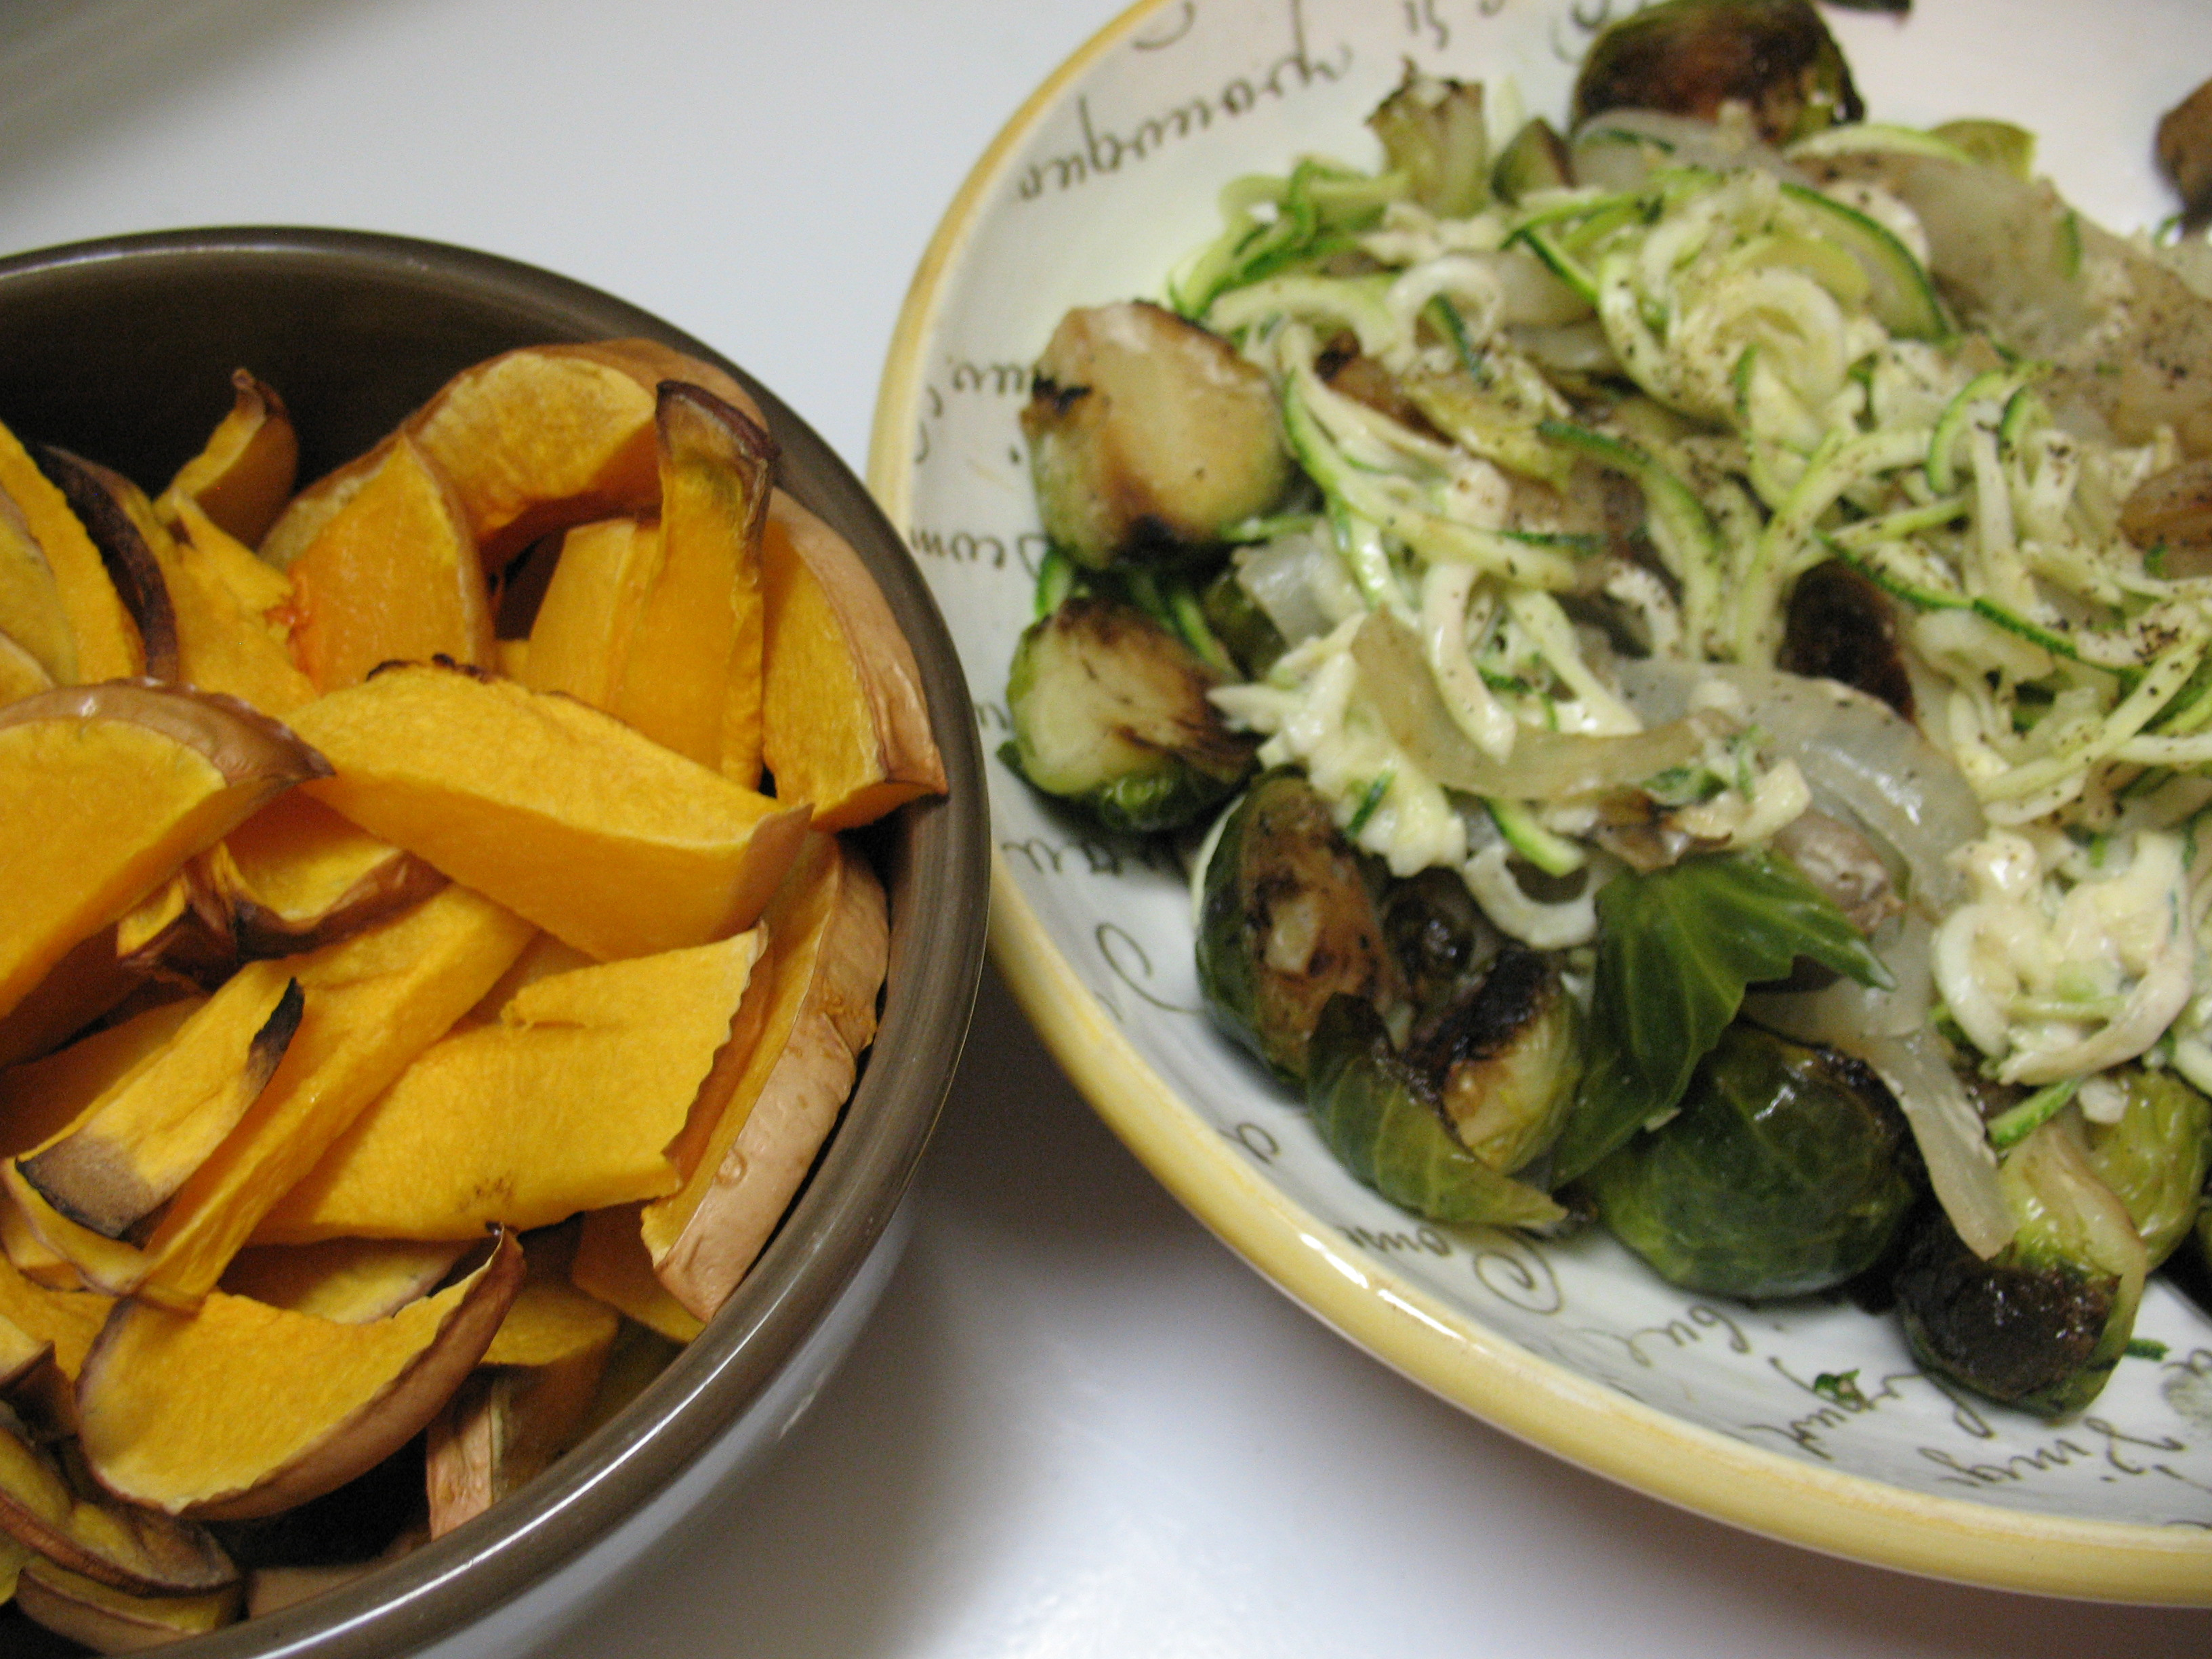 Stir-fry veggies with tahini dressing and roasted butternut squash.